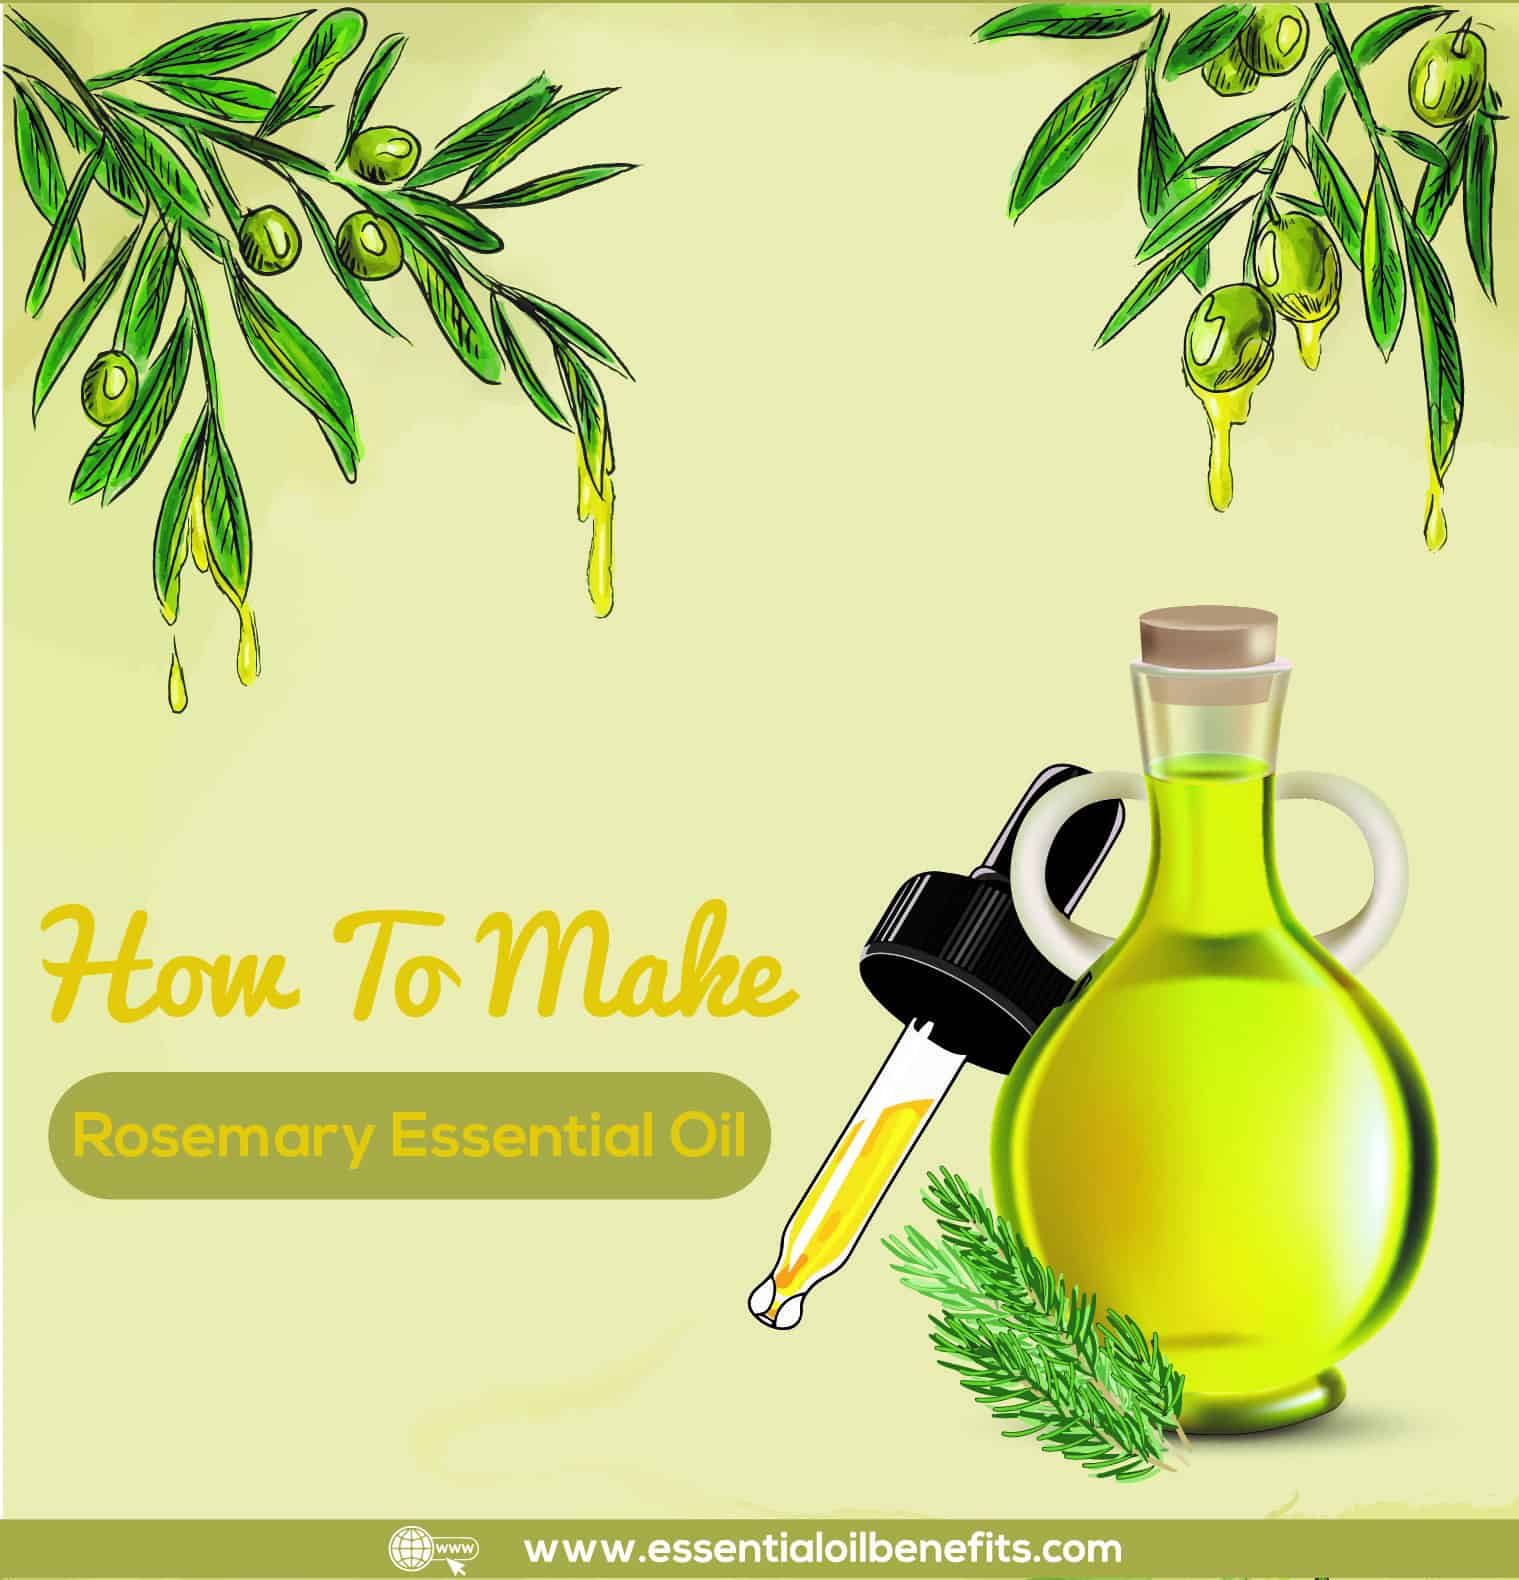 How To Make Essential Oils? Essential Oil Benefits